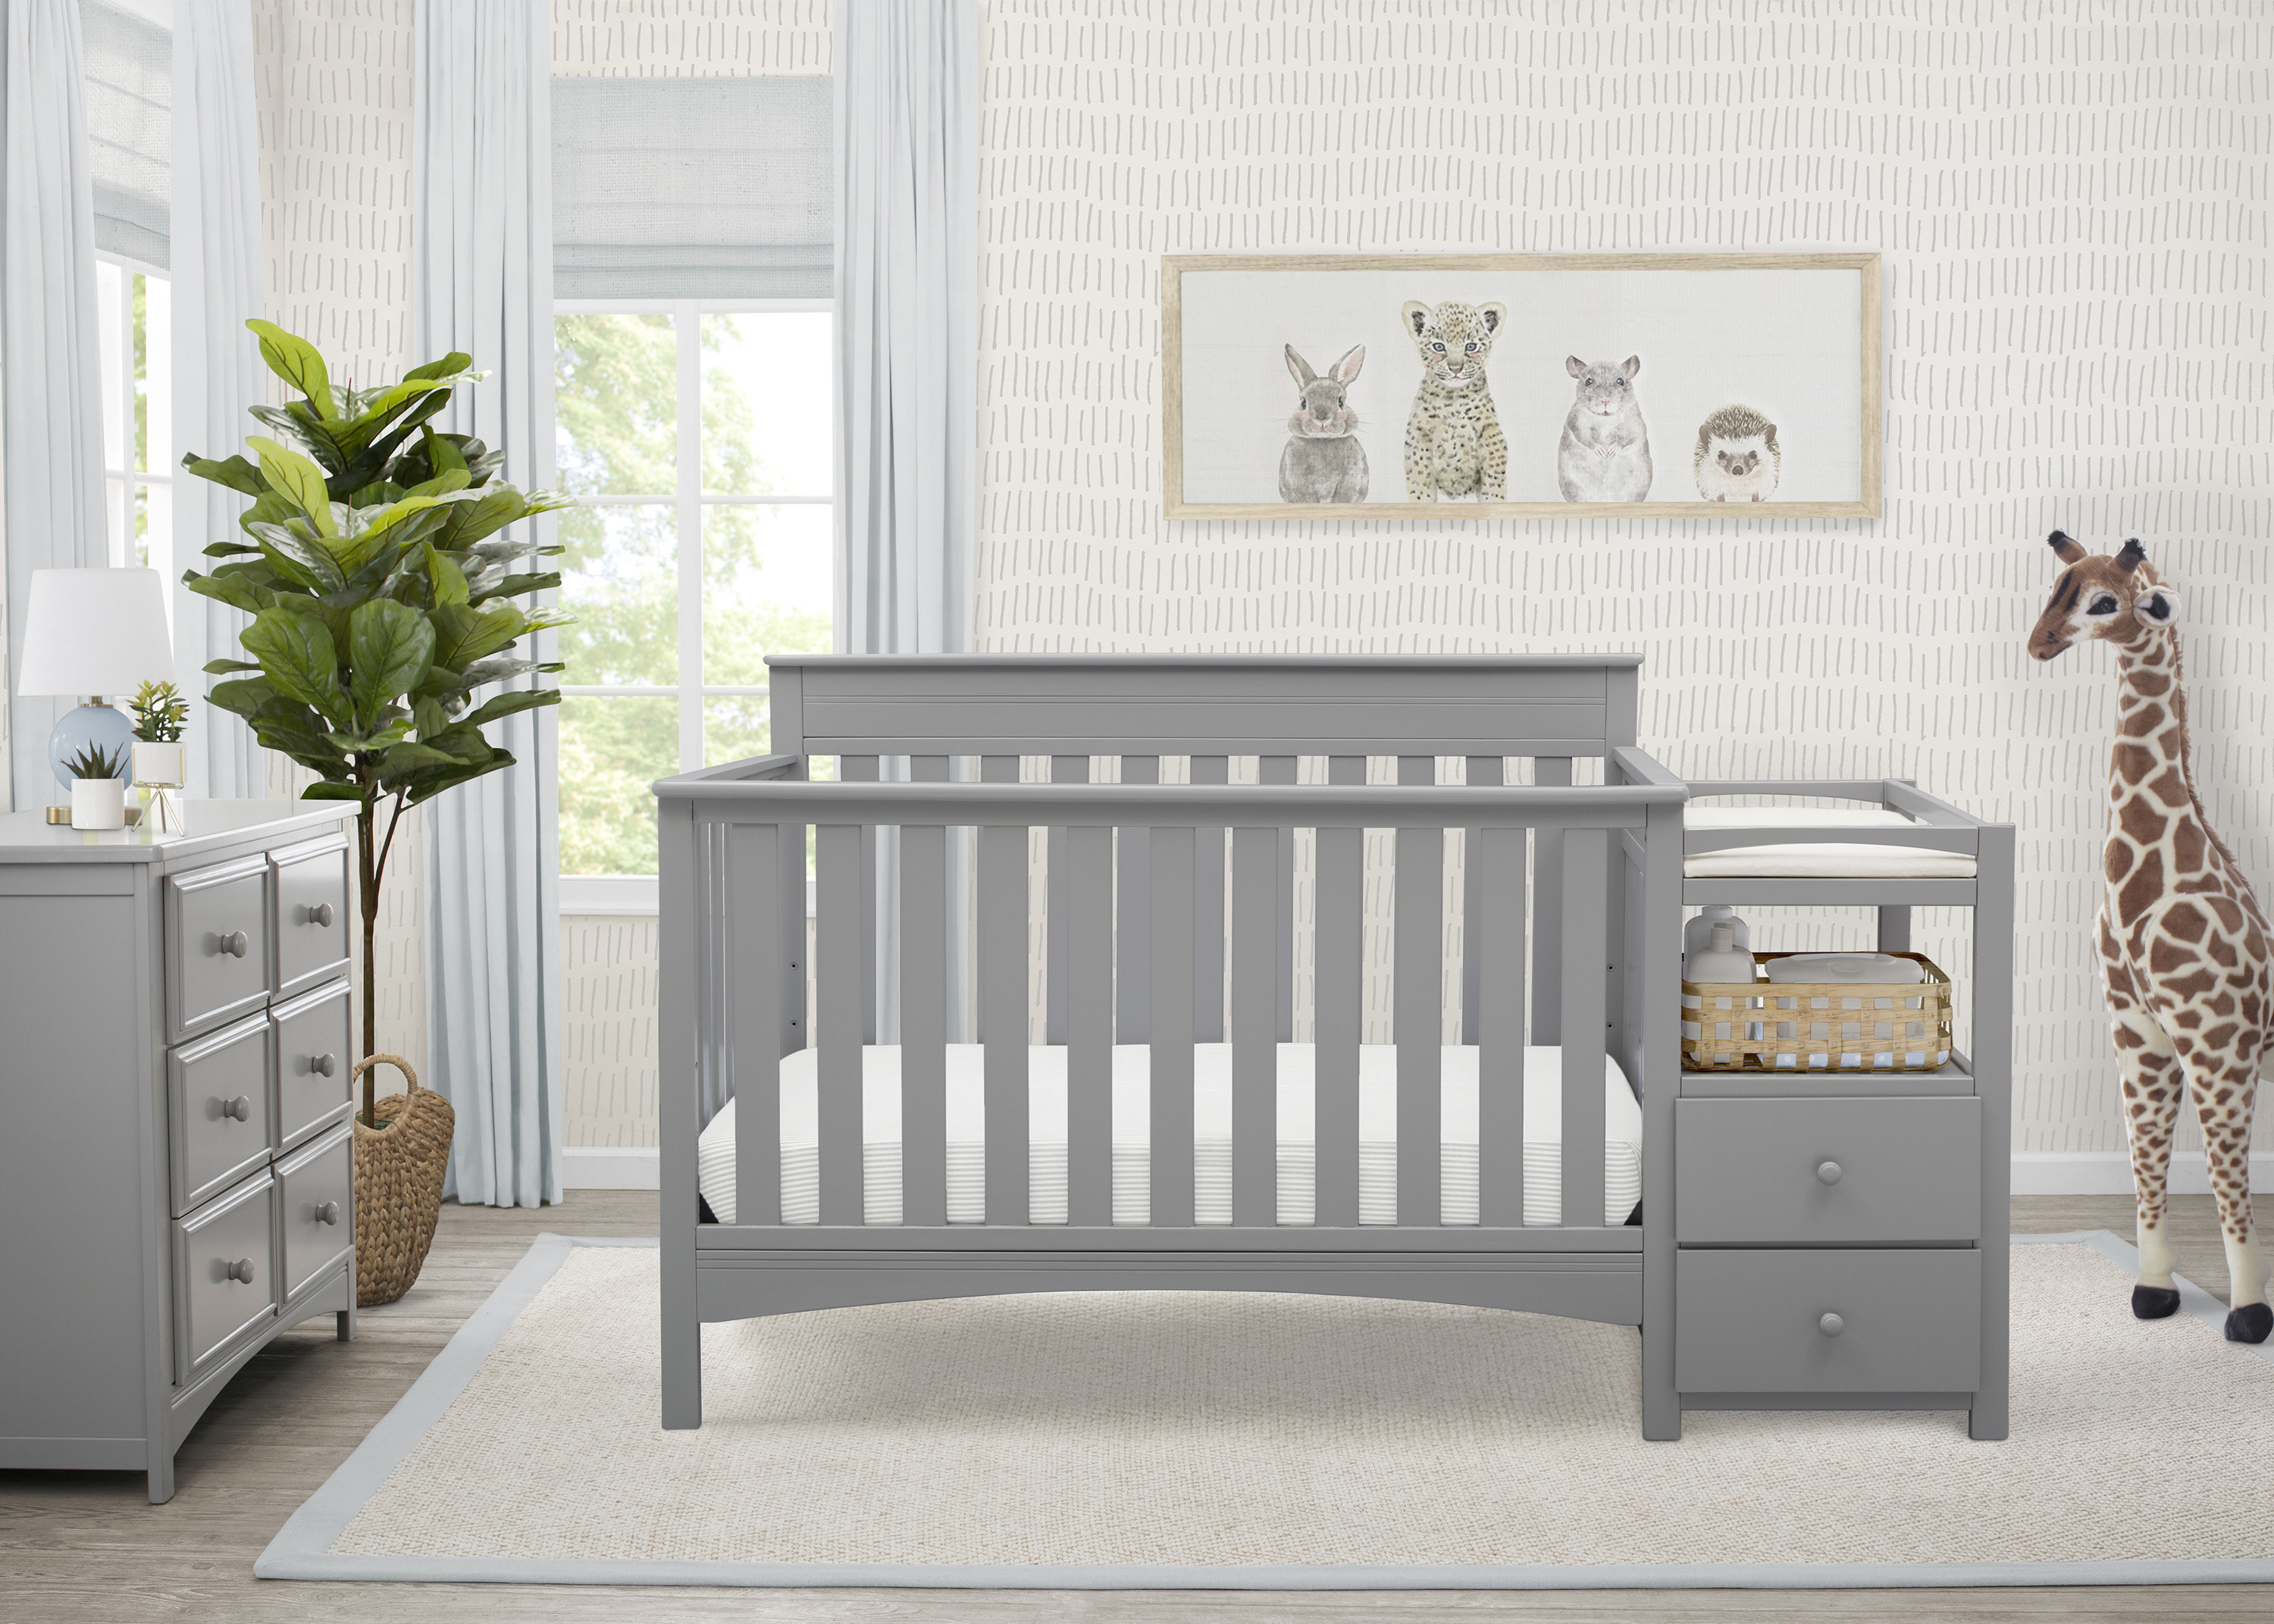 The grey crib and table, in a nursery